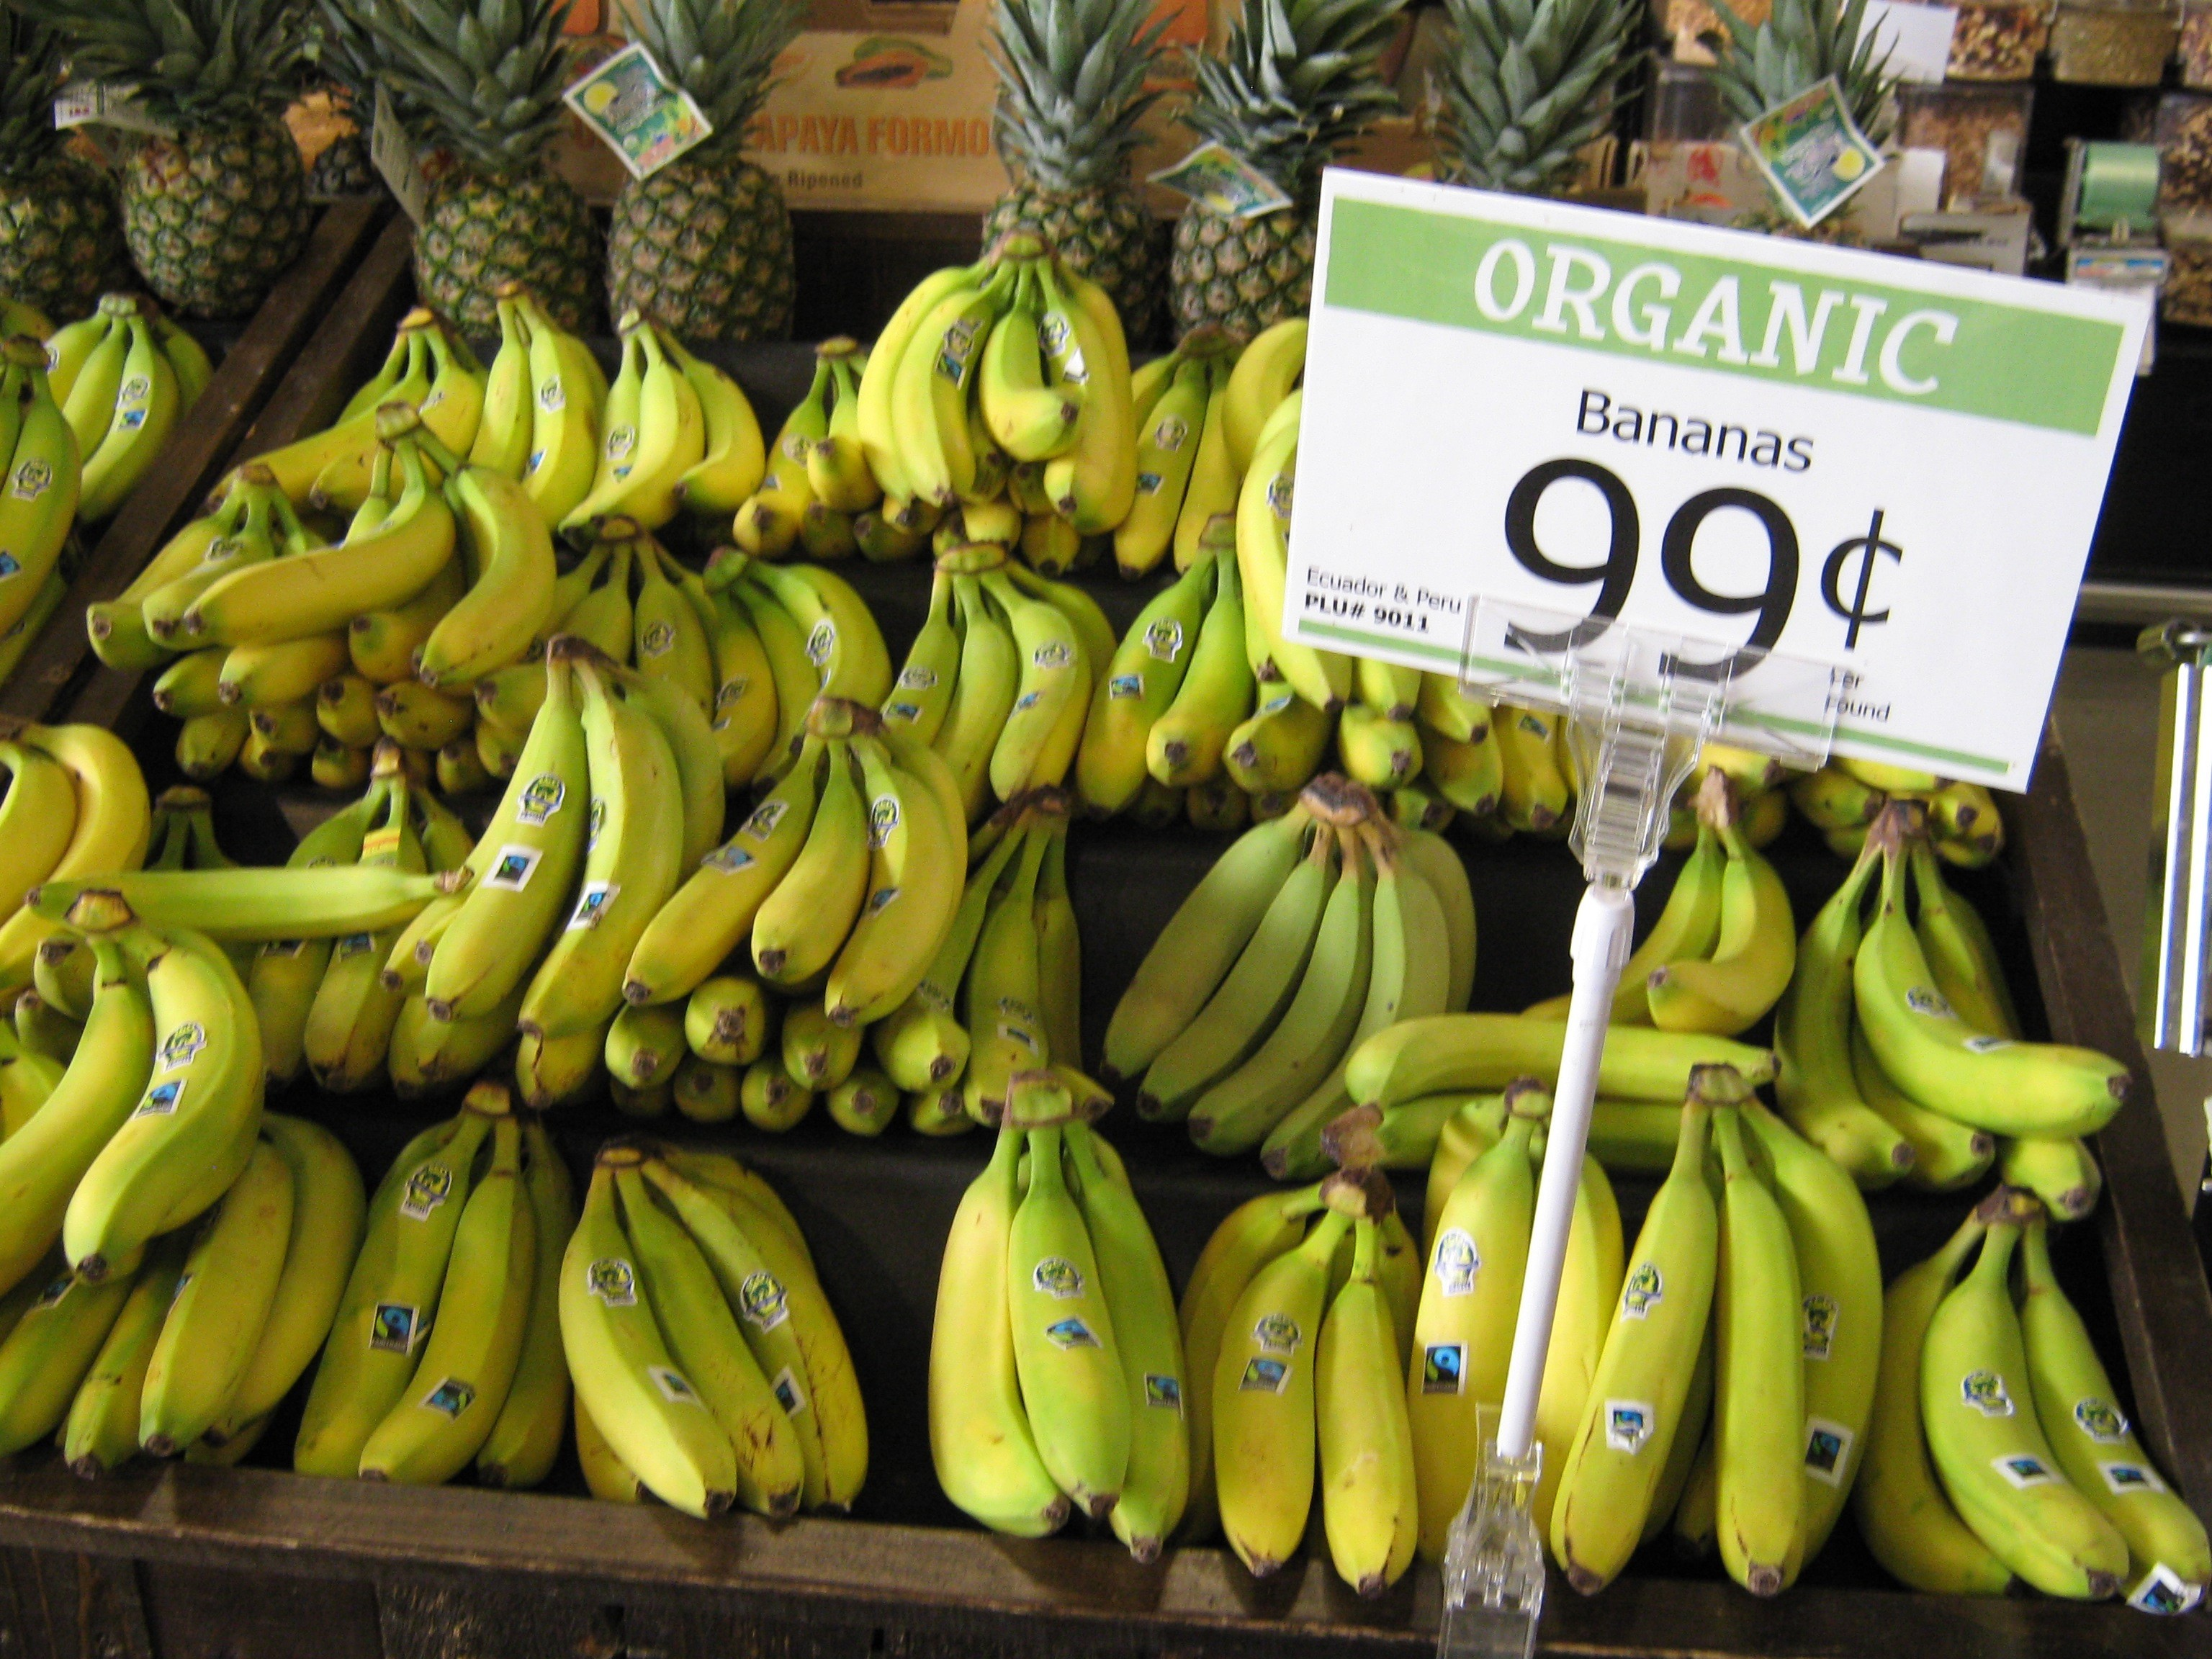 Bananas Superior To Sports Drinks In Aiding Athletes' Recovery From Intense Workouts